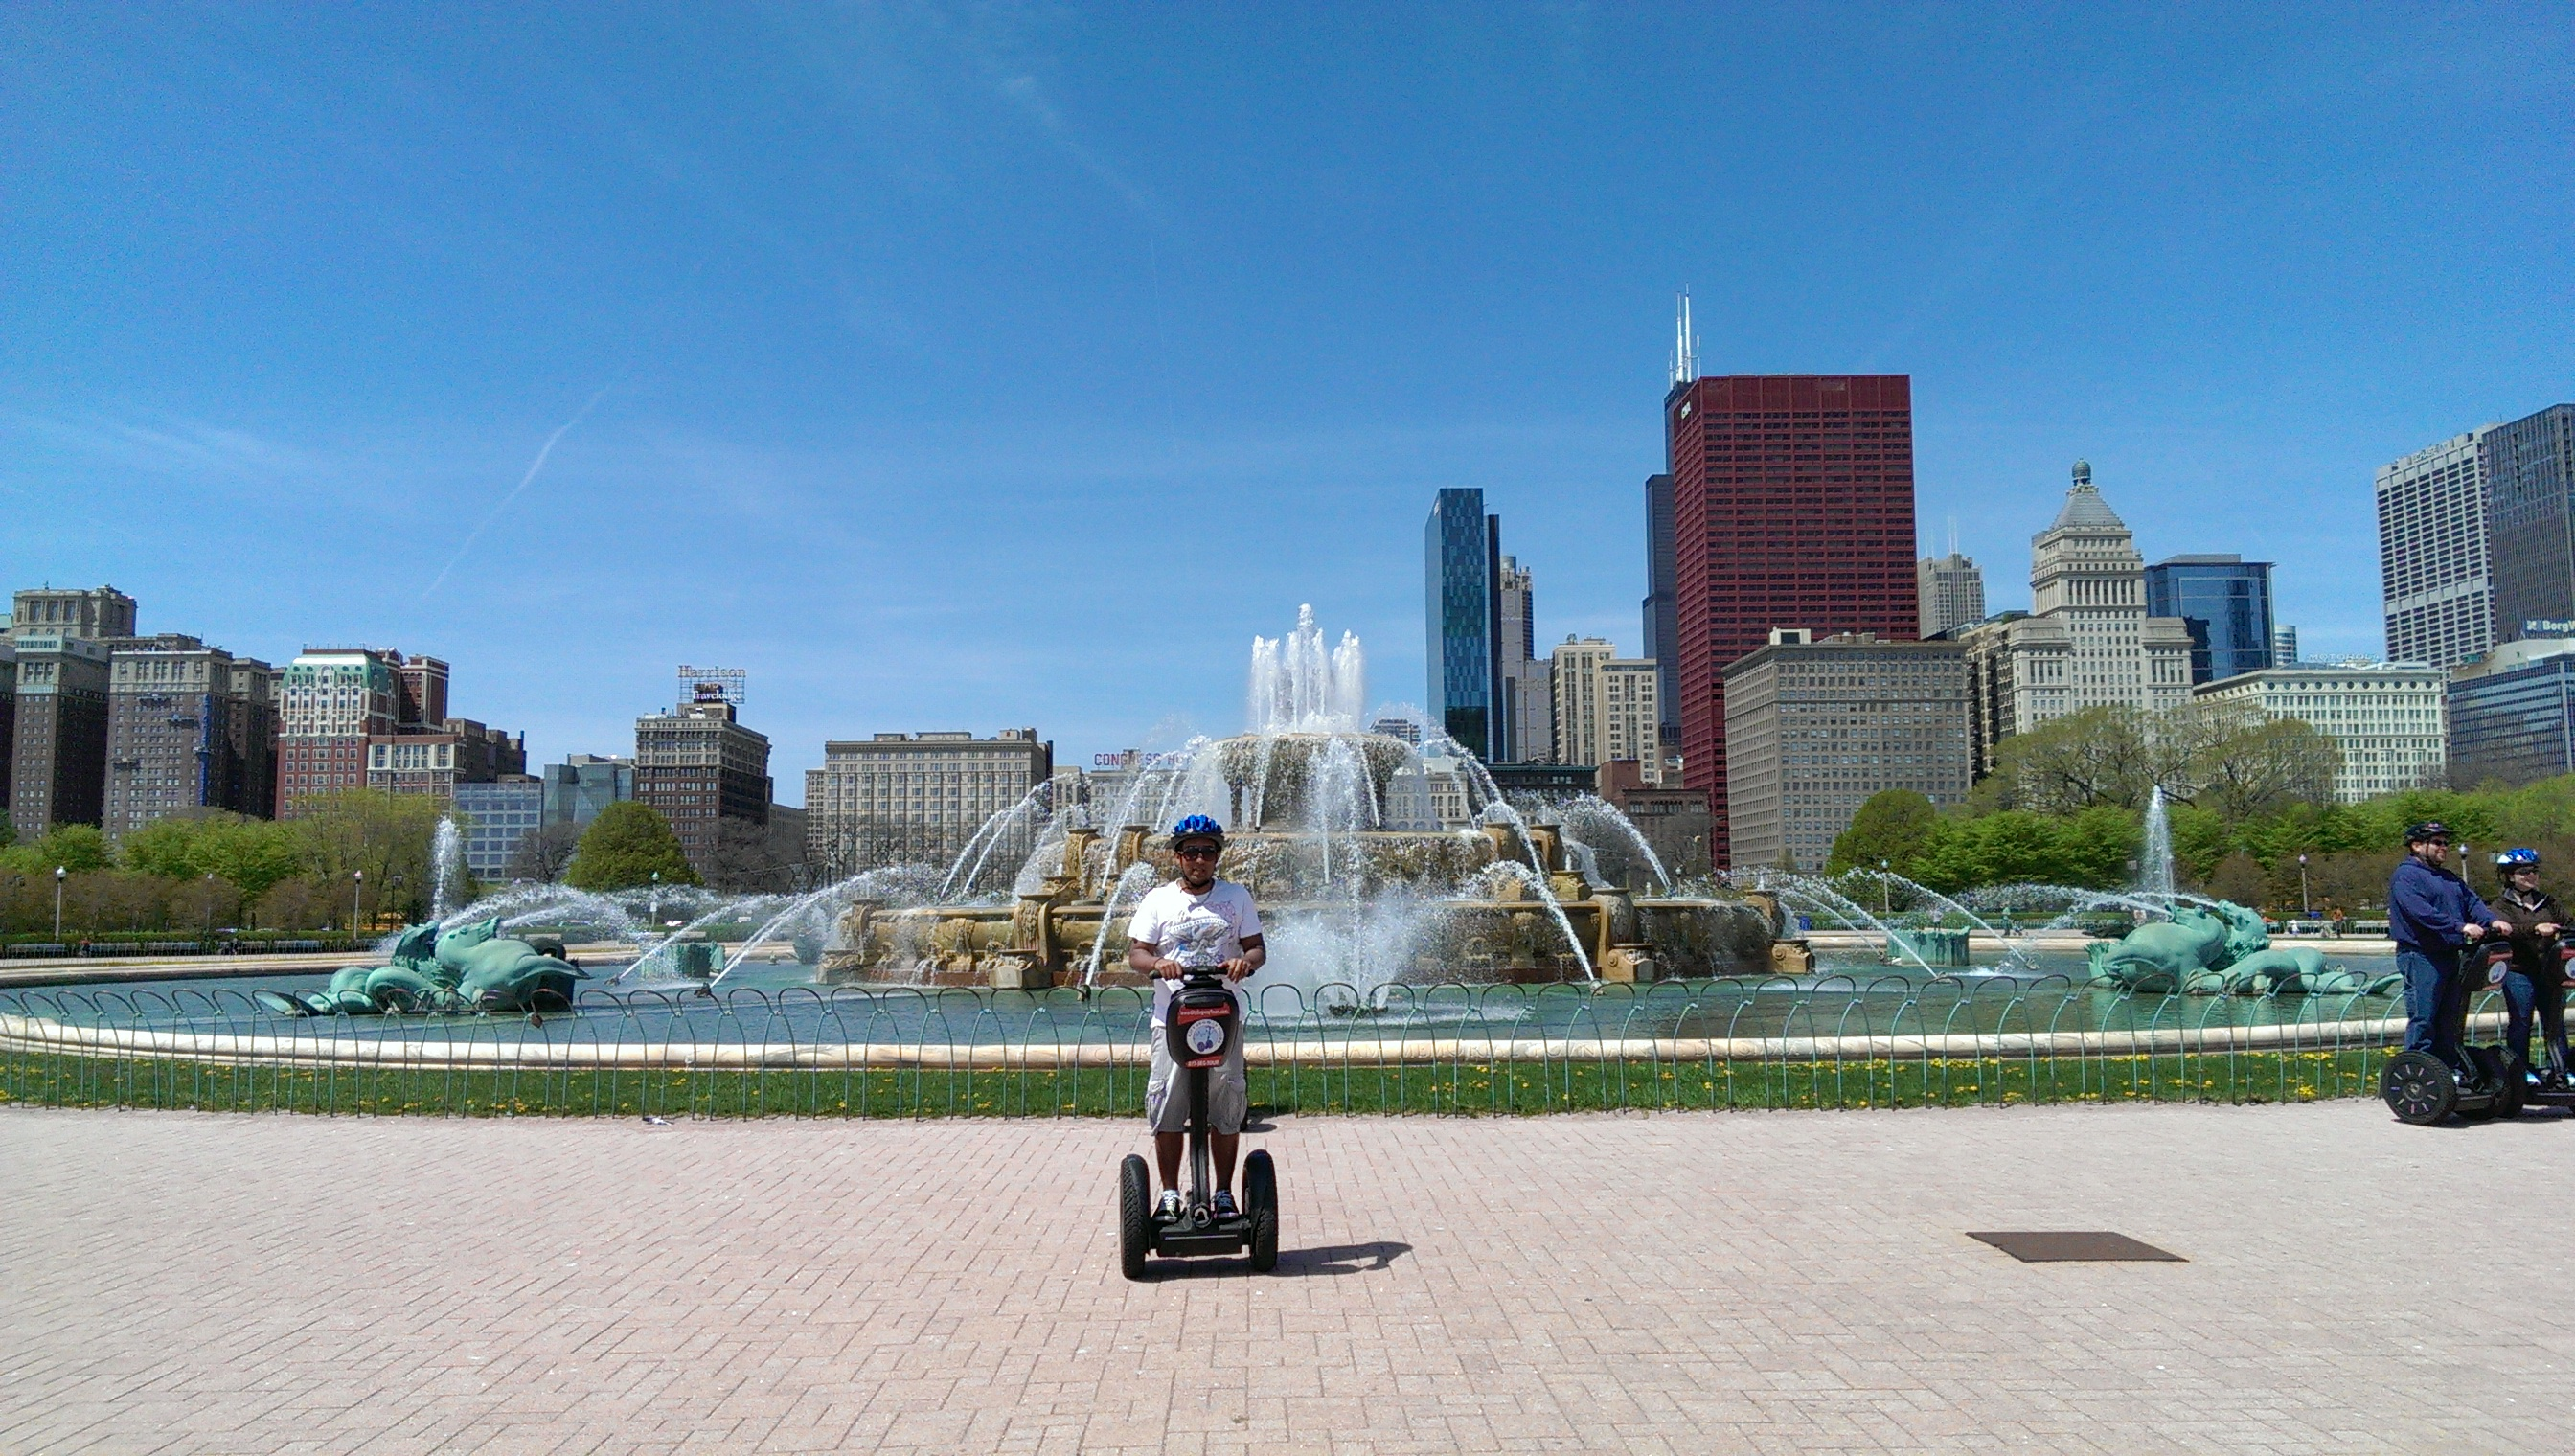 Segway tour. An ideal way to see Chicago